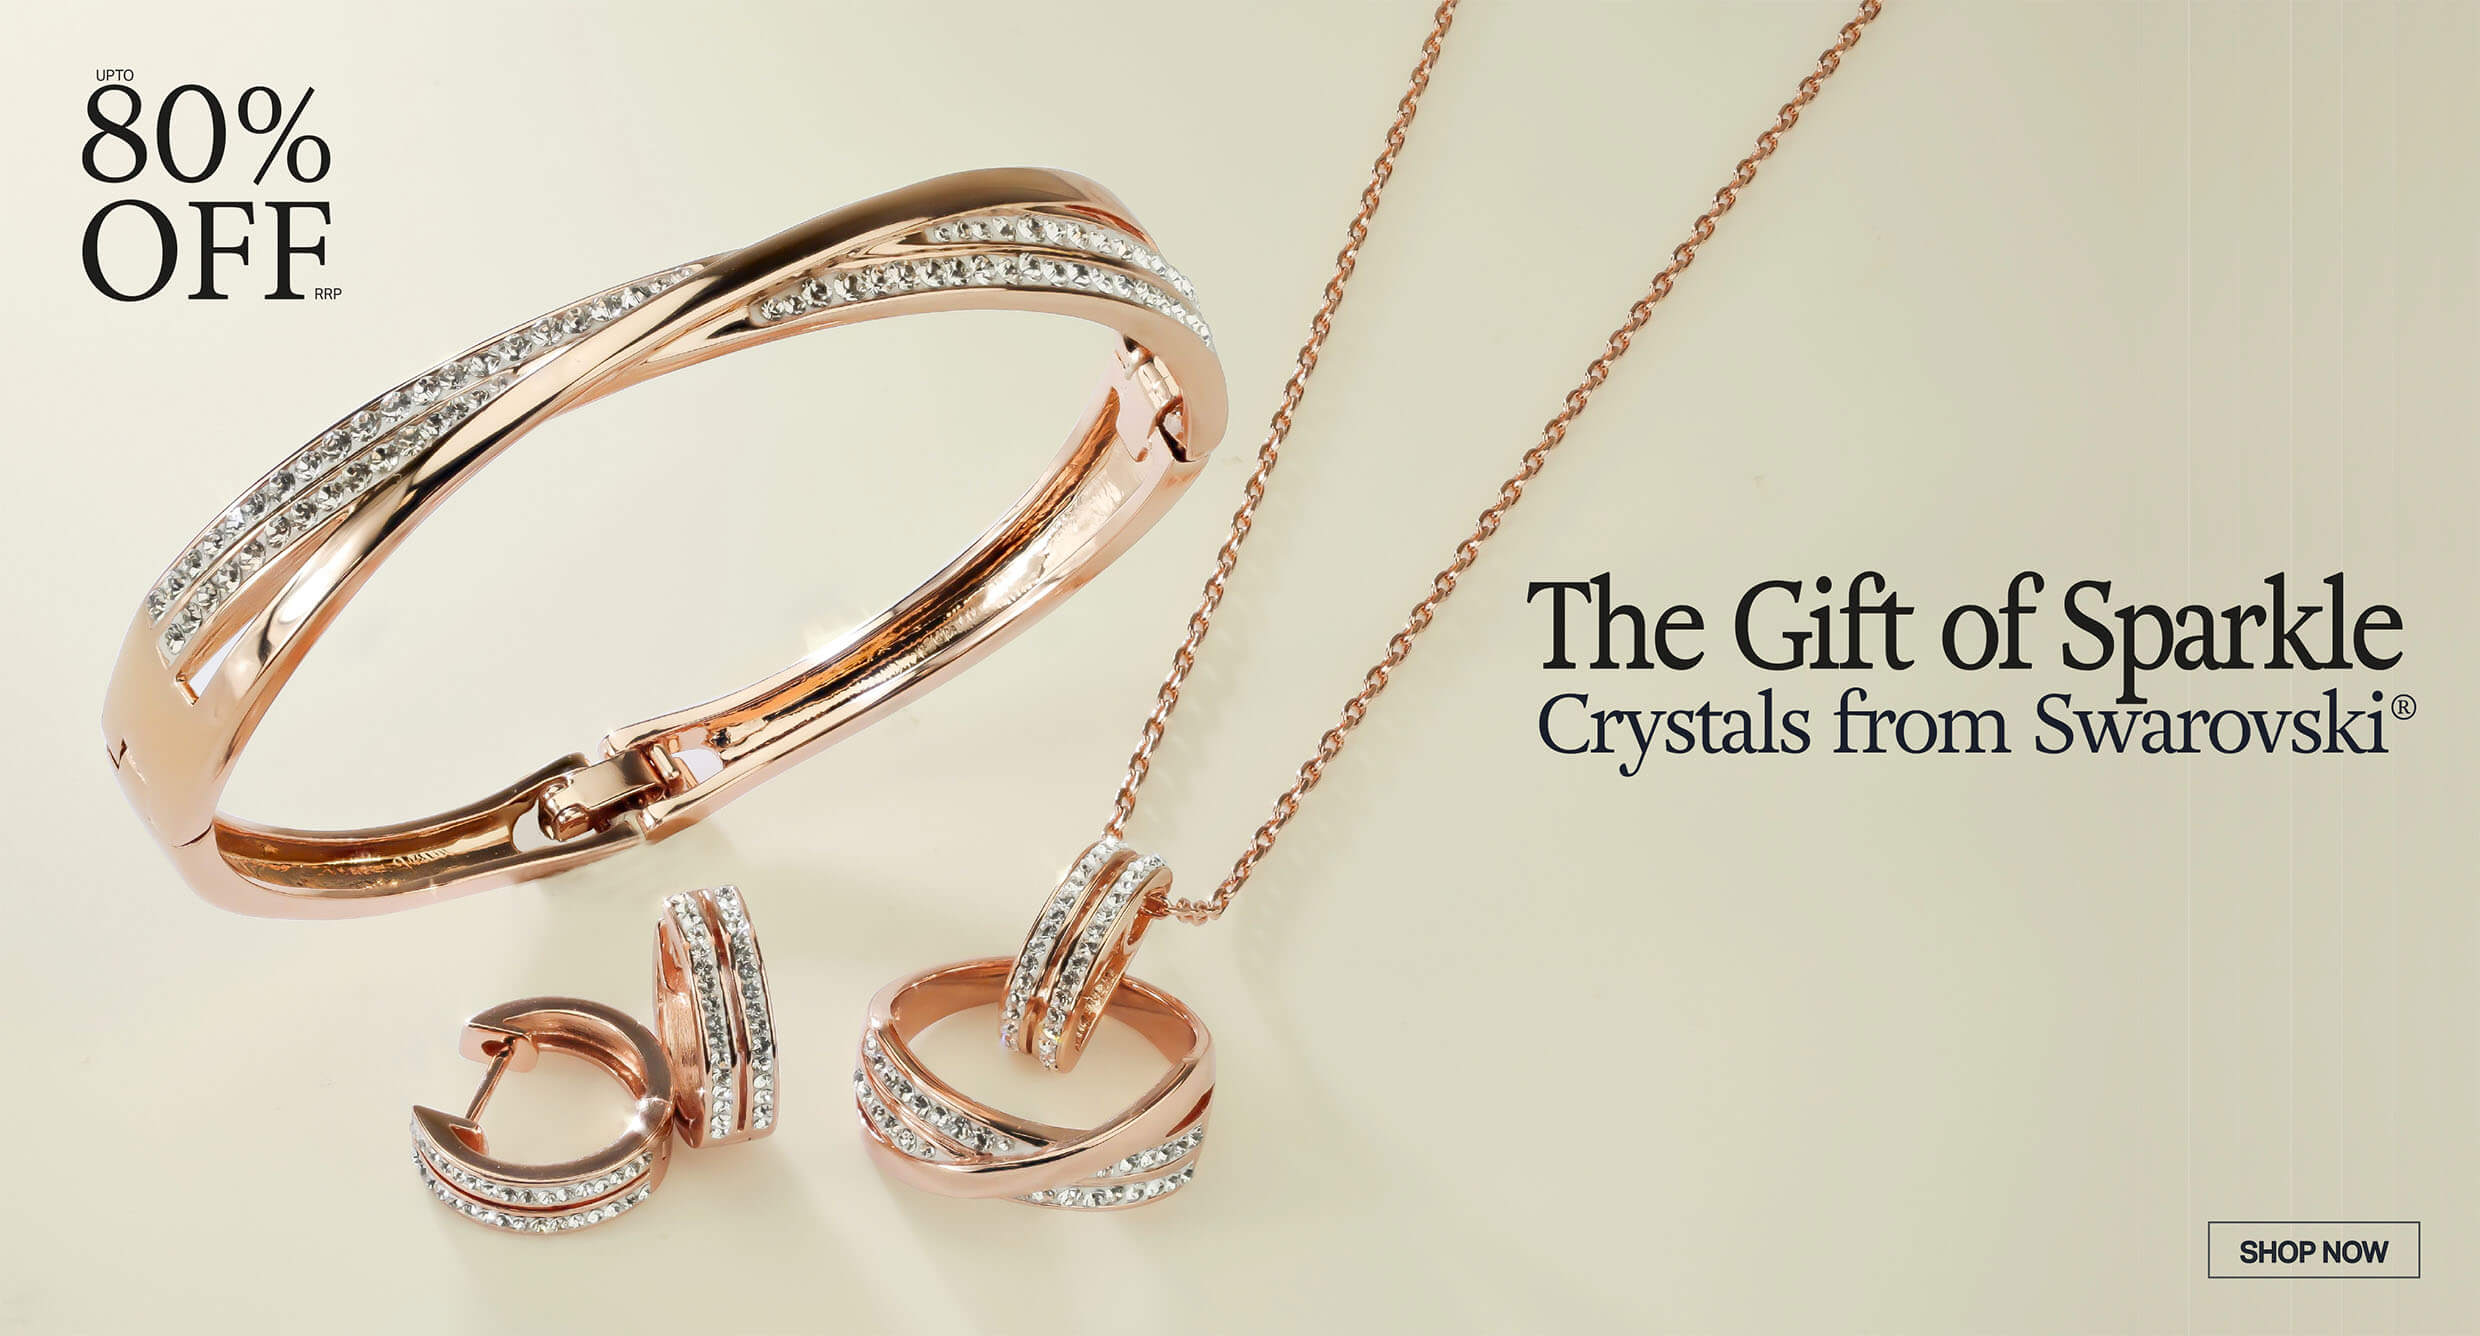 The Gift of Sparkle ... Crystals from Swarovski